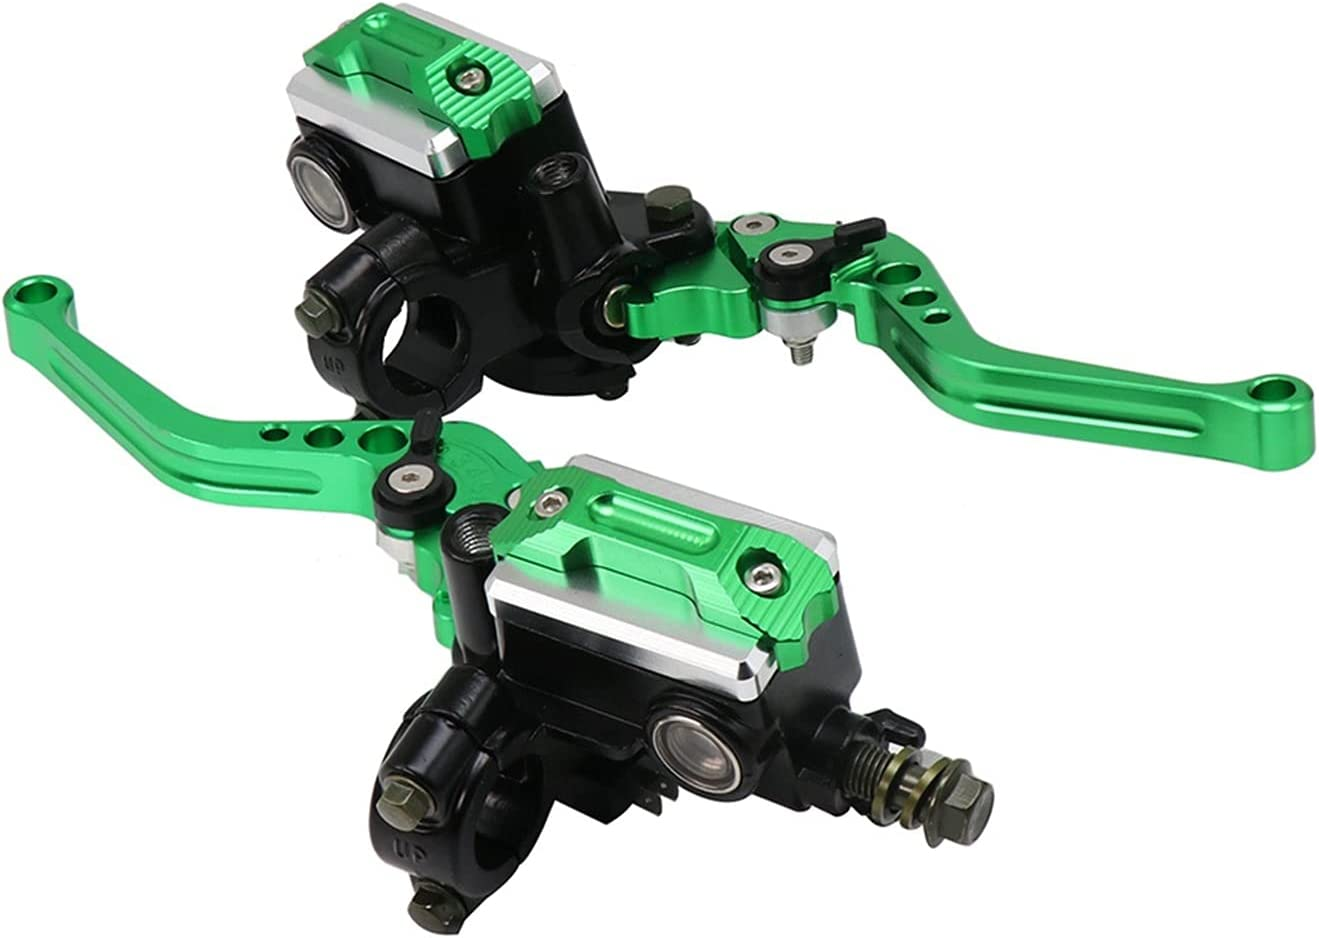 MULANG MULANGSTOR 1Pair Limited price sale 22mm Brake Motorcycle Adjustment Beauty products Roller